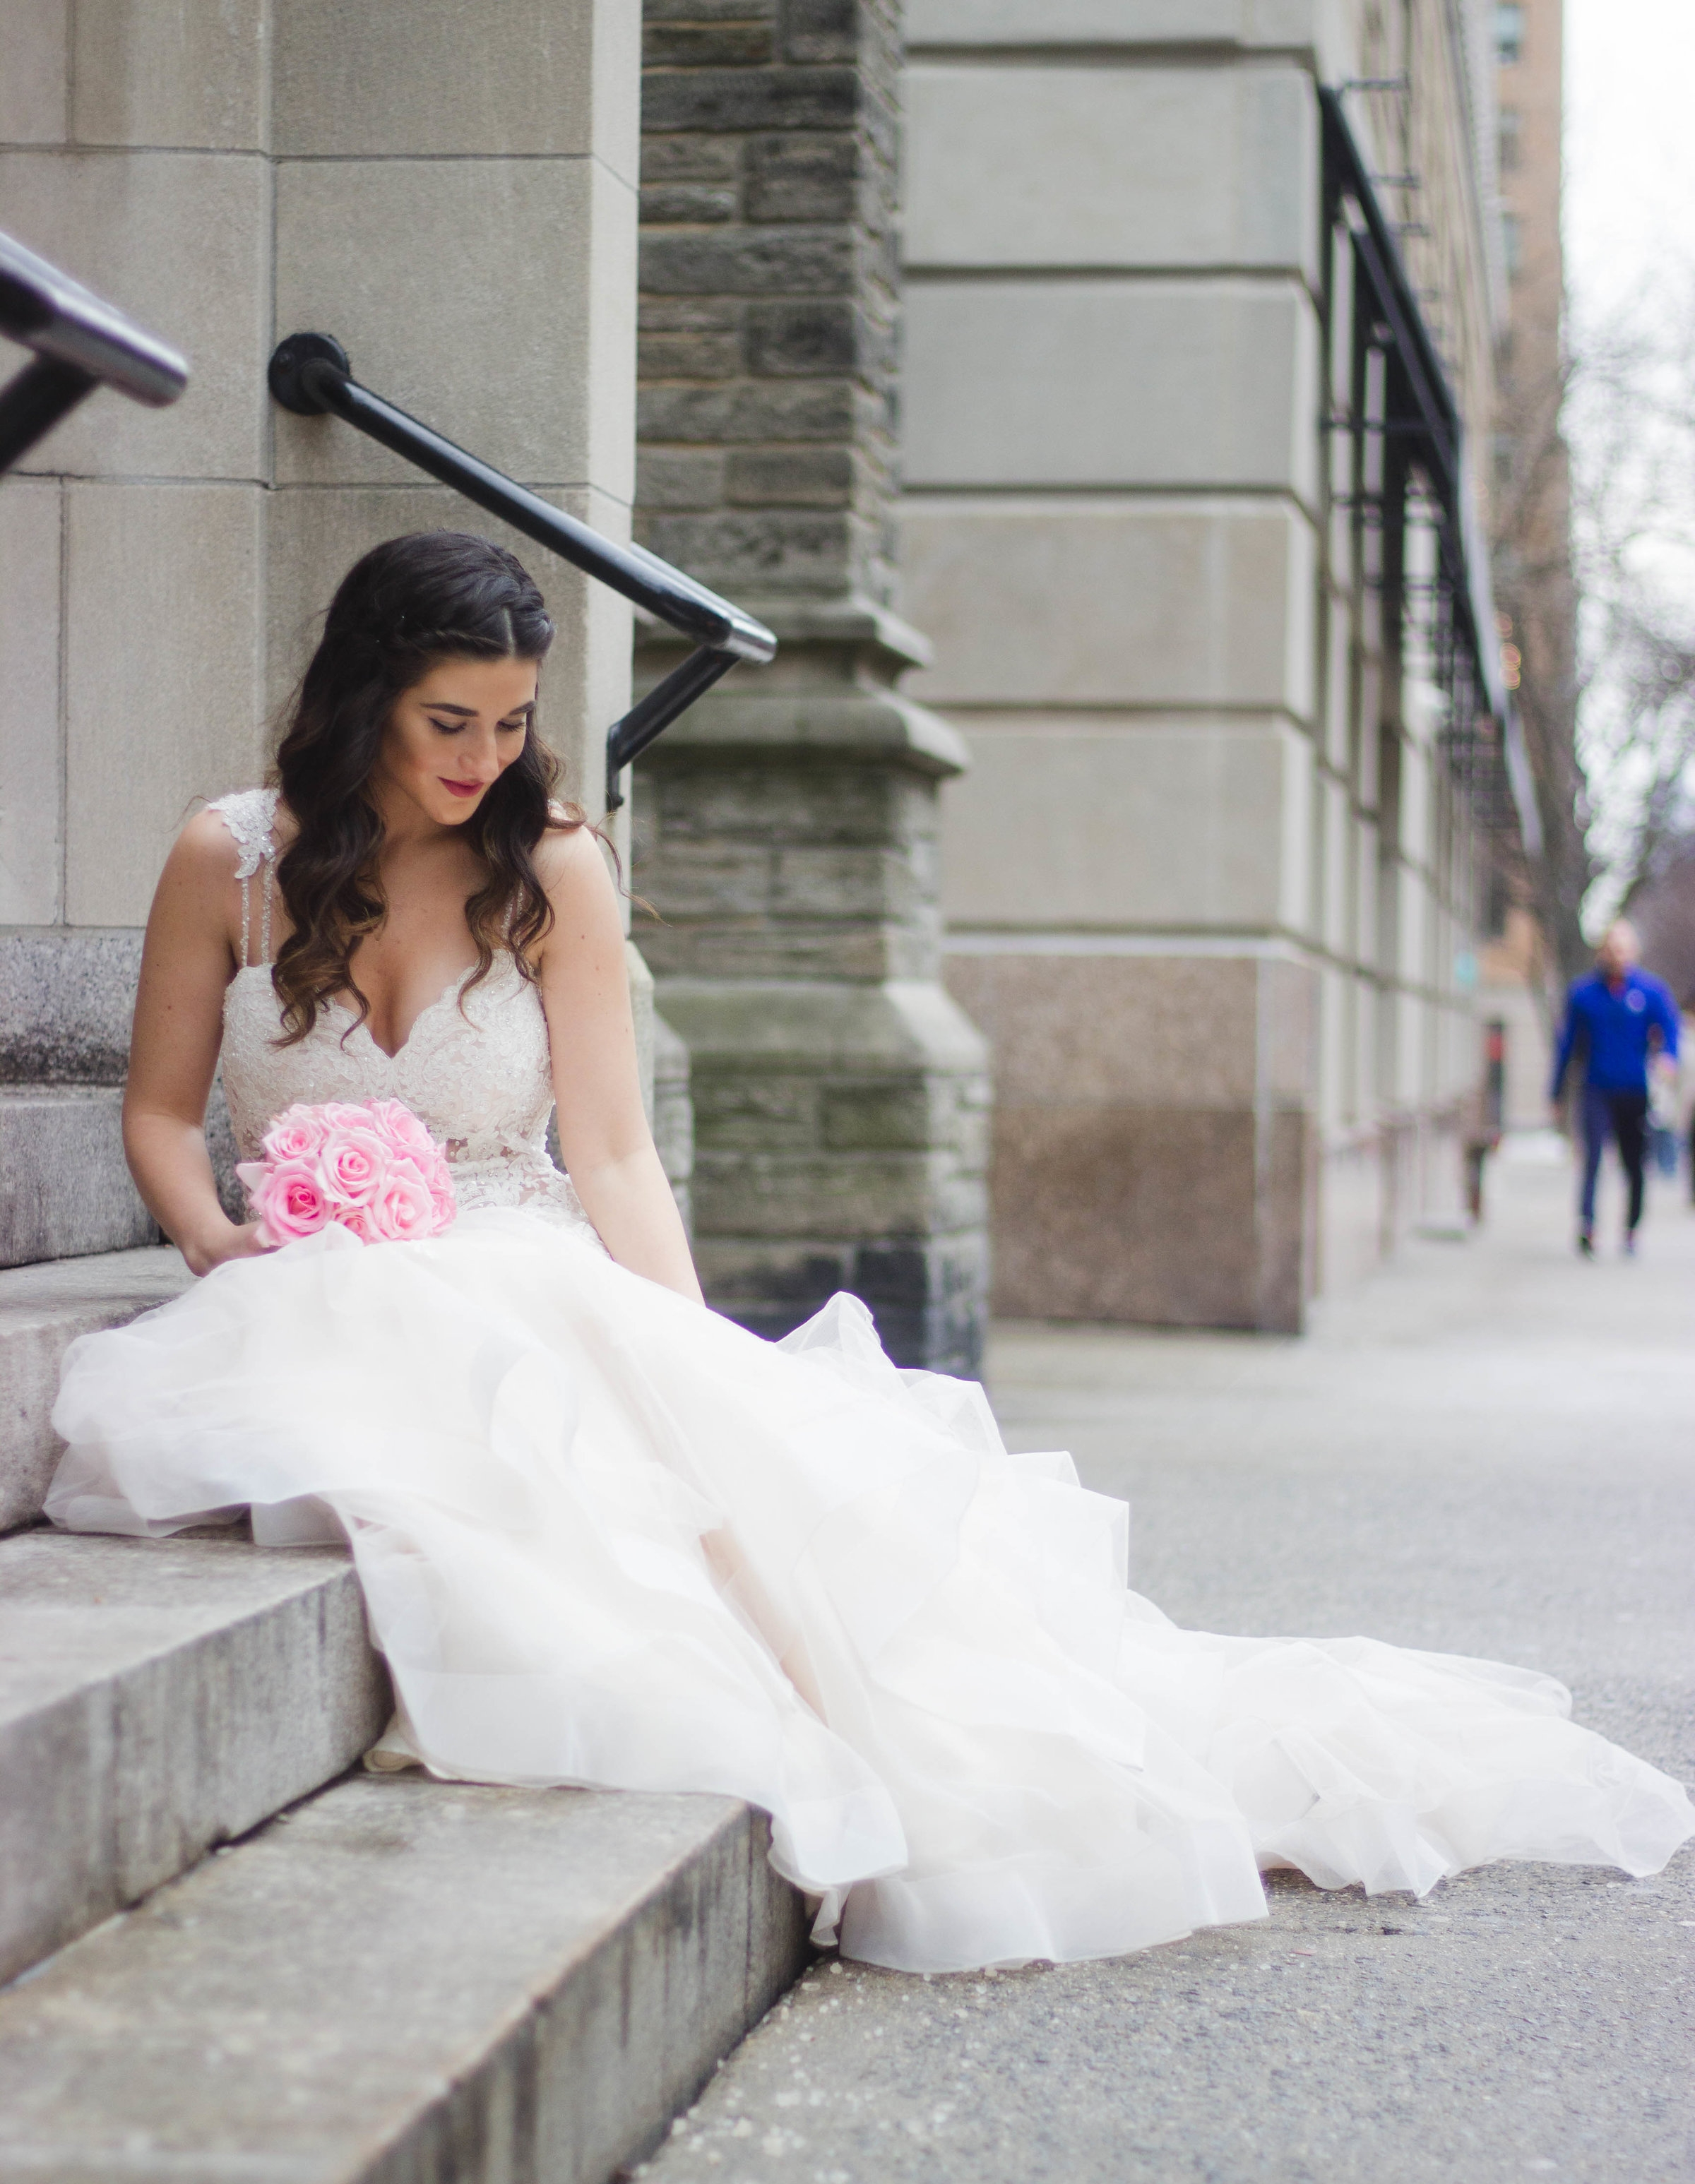 Playing Dress Up With Morilee Bridal Esther Santer Fashion Blog NYC Street Style Blogger Outfit OOTD Trendy Wedding Dress Gown White Dreamy Modern Timeless Beautiful Train Pink Flowers Bouquet Hair Hairstyle Beauty Makeup Lace Trumpet Mermaid Flare.jpg